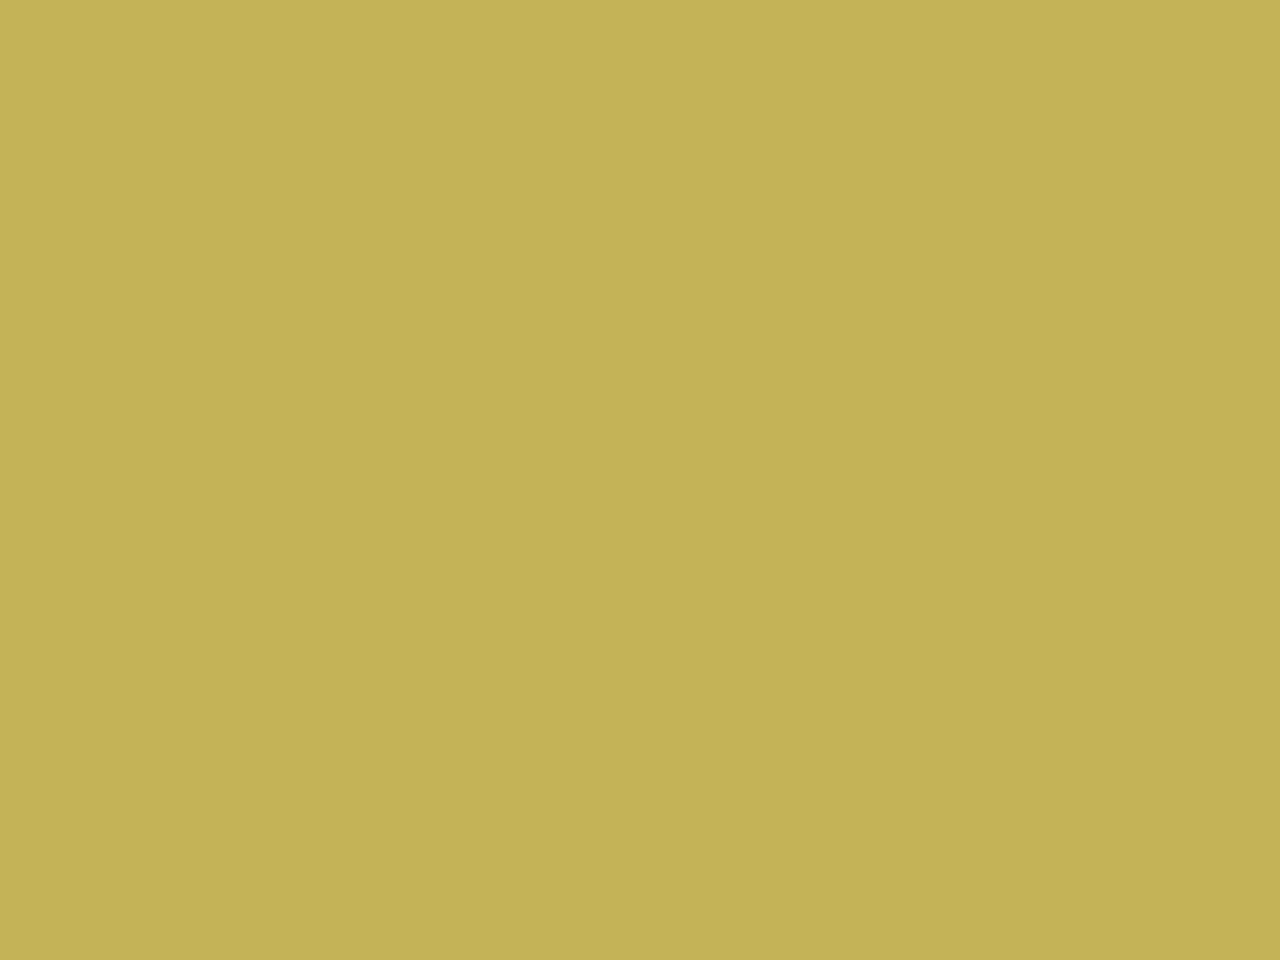 1280x960 Vegas Gold Solid Color Background